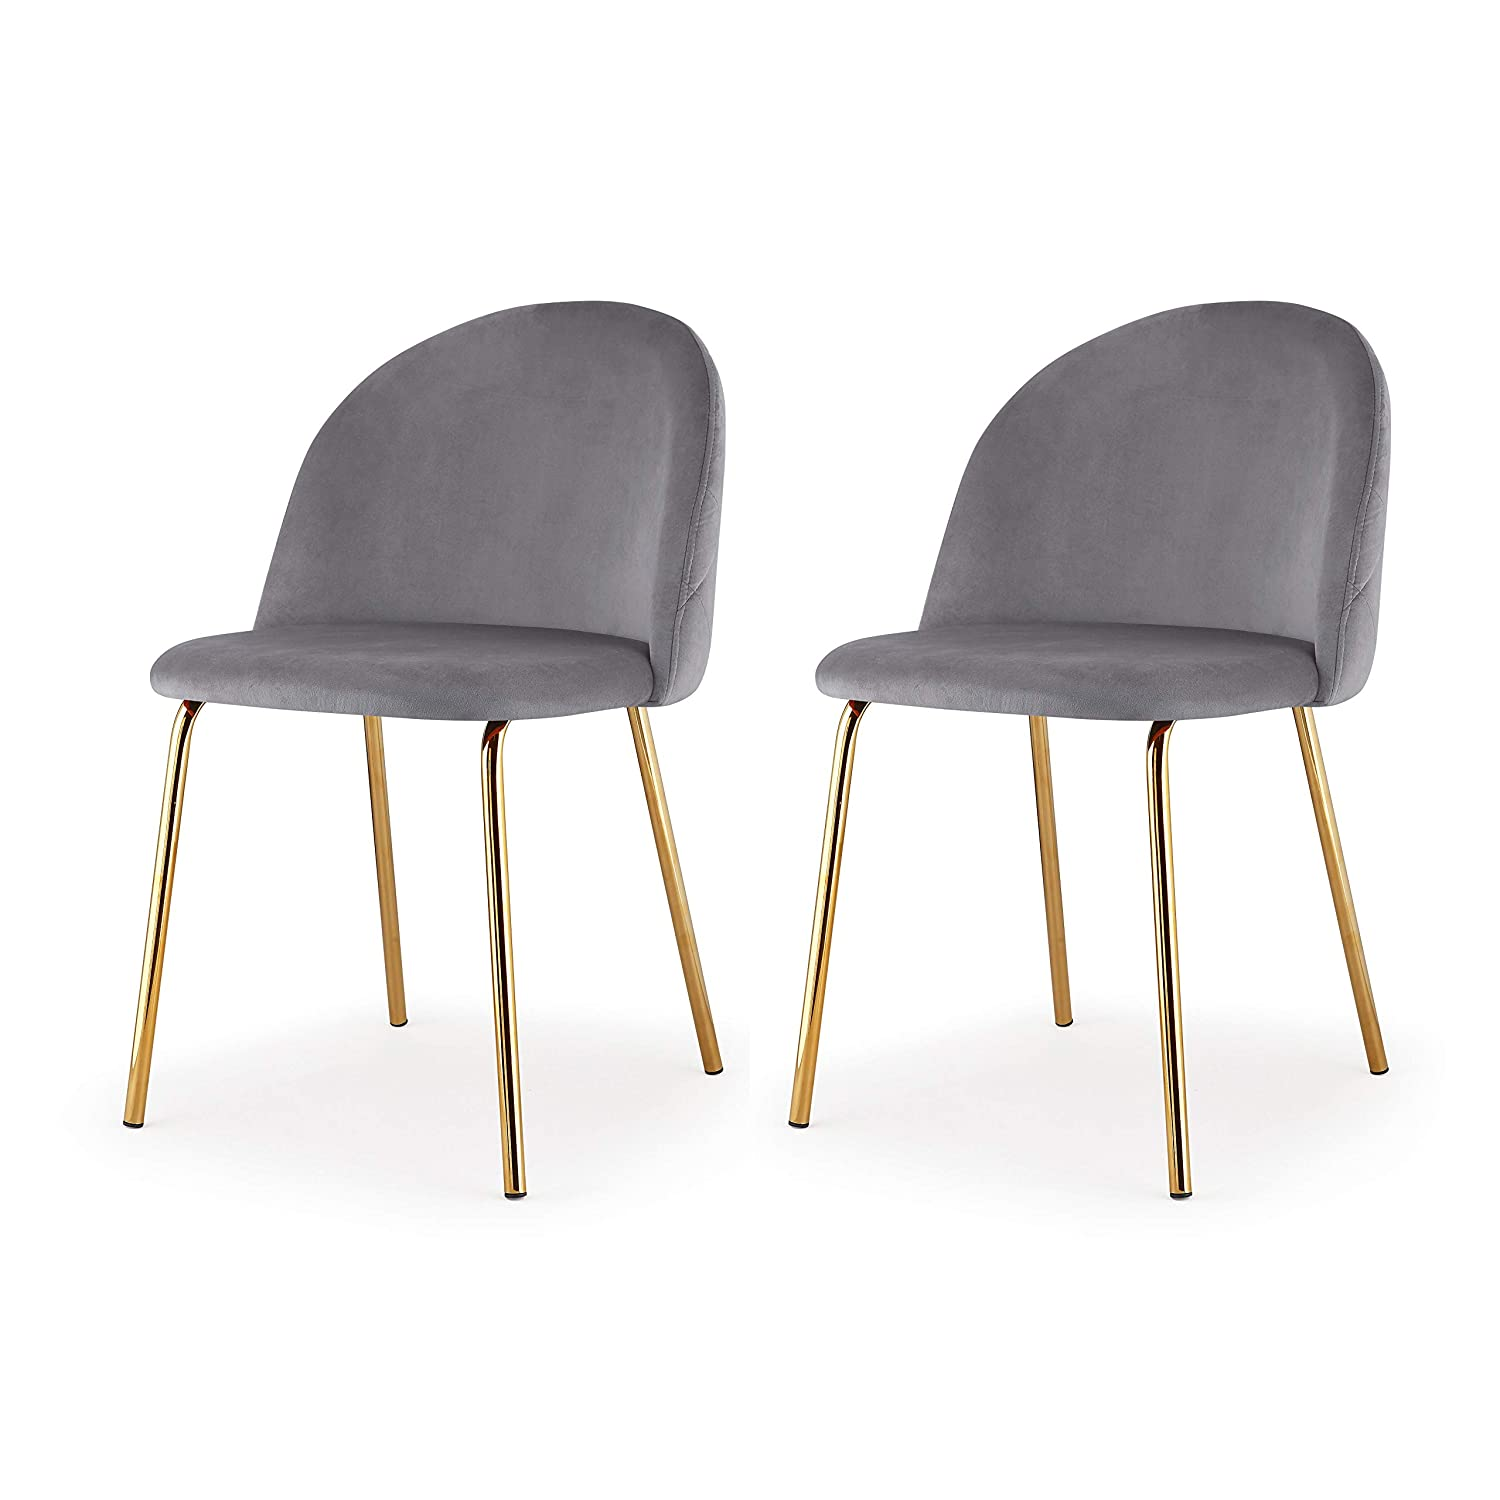 M60 Modern Velvet Chair- Set of 2 Piece Velvet Upholstery Gold Frame Chair Set- Steel Base Side Chair- Elegant and Comfortable Design – Ideal for Dining Room- Multiple Colors Available Grey